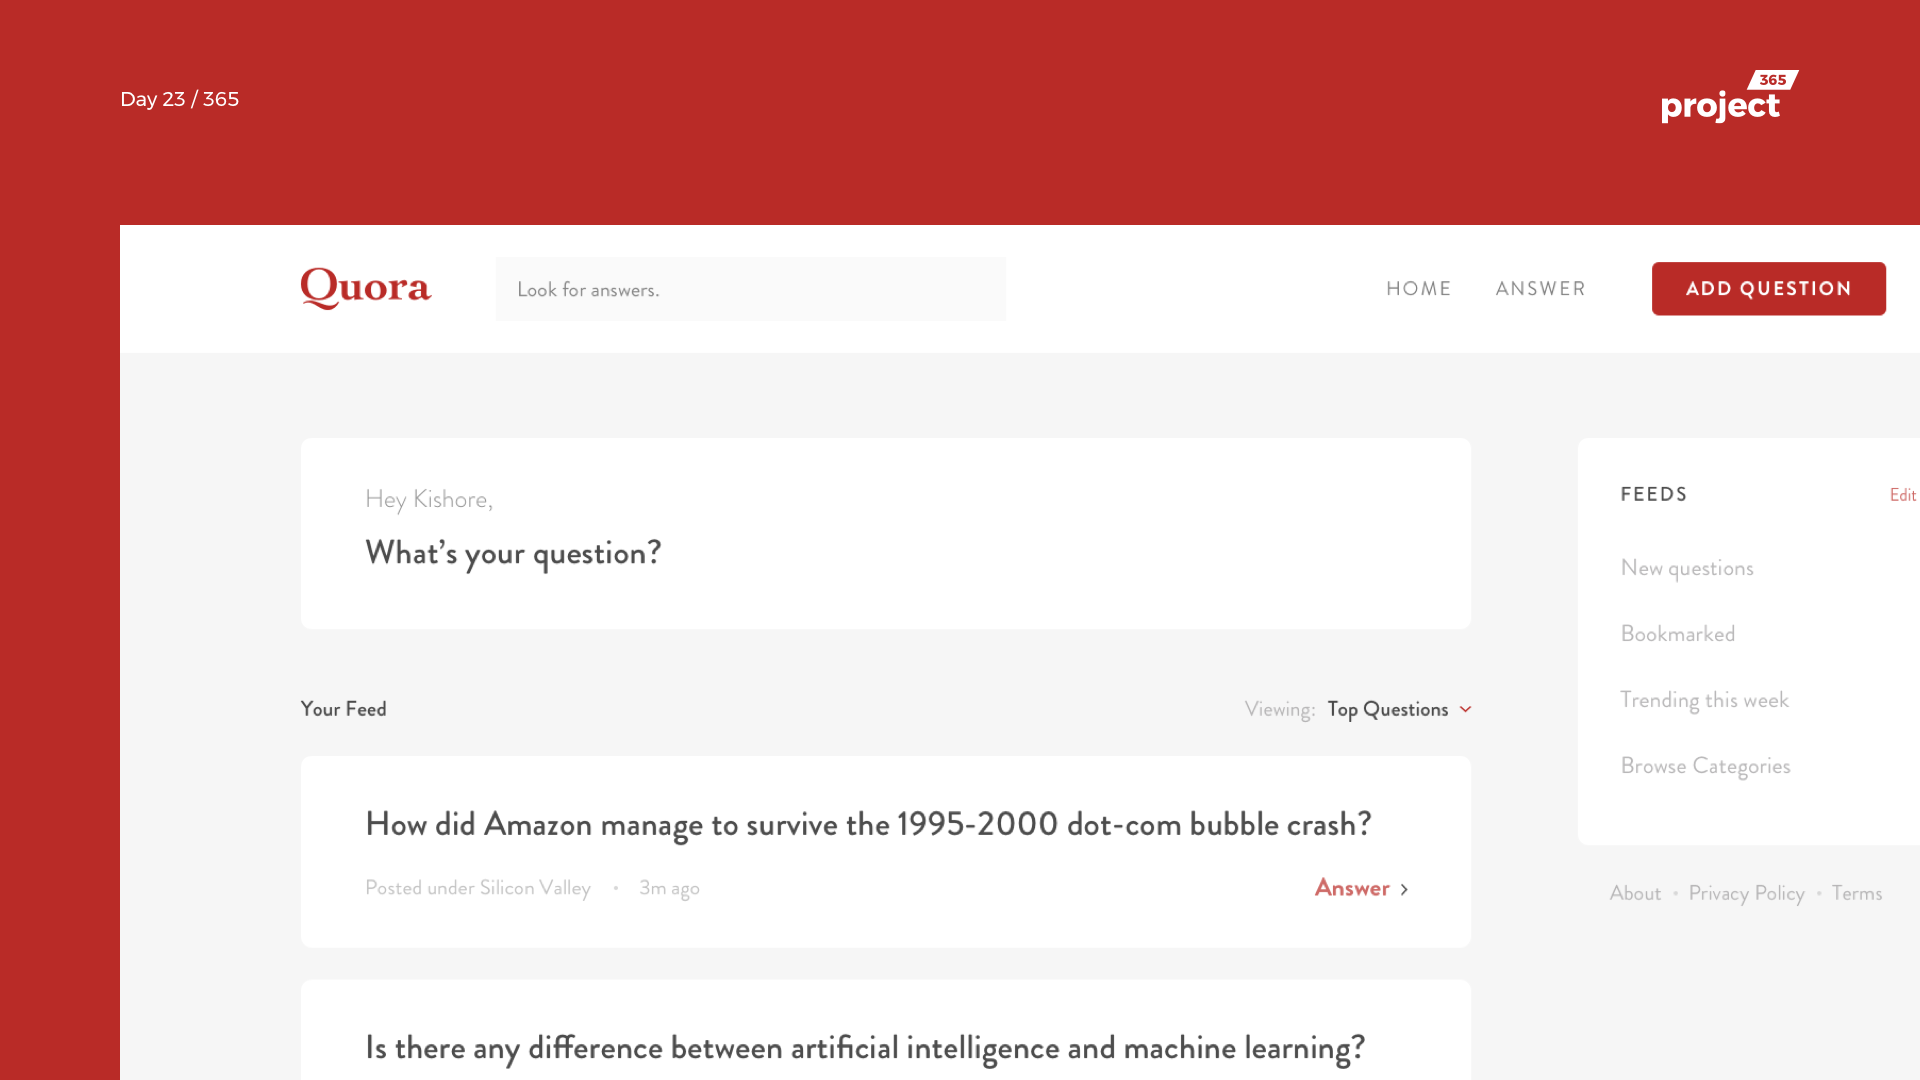 Day 23 – Quora.com Redesign